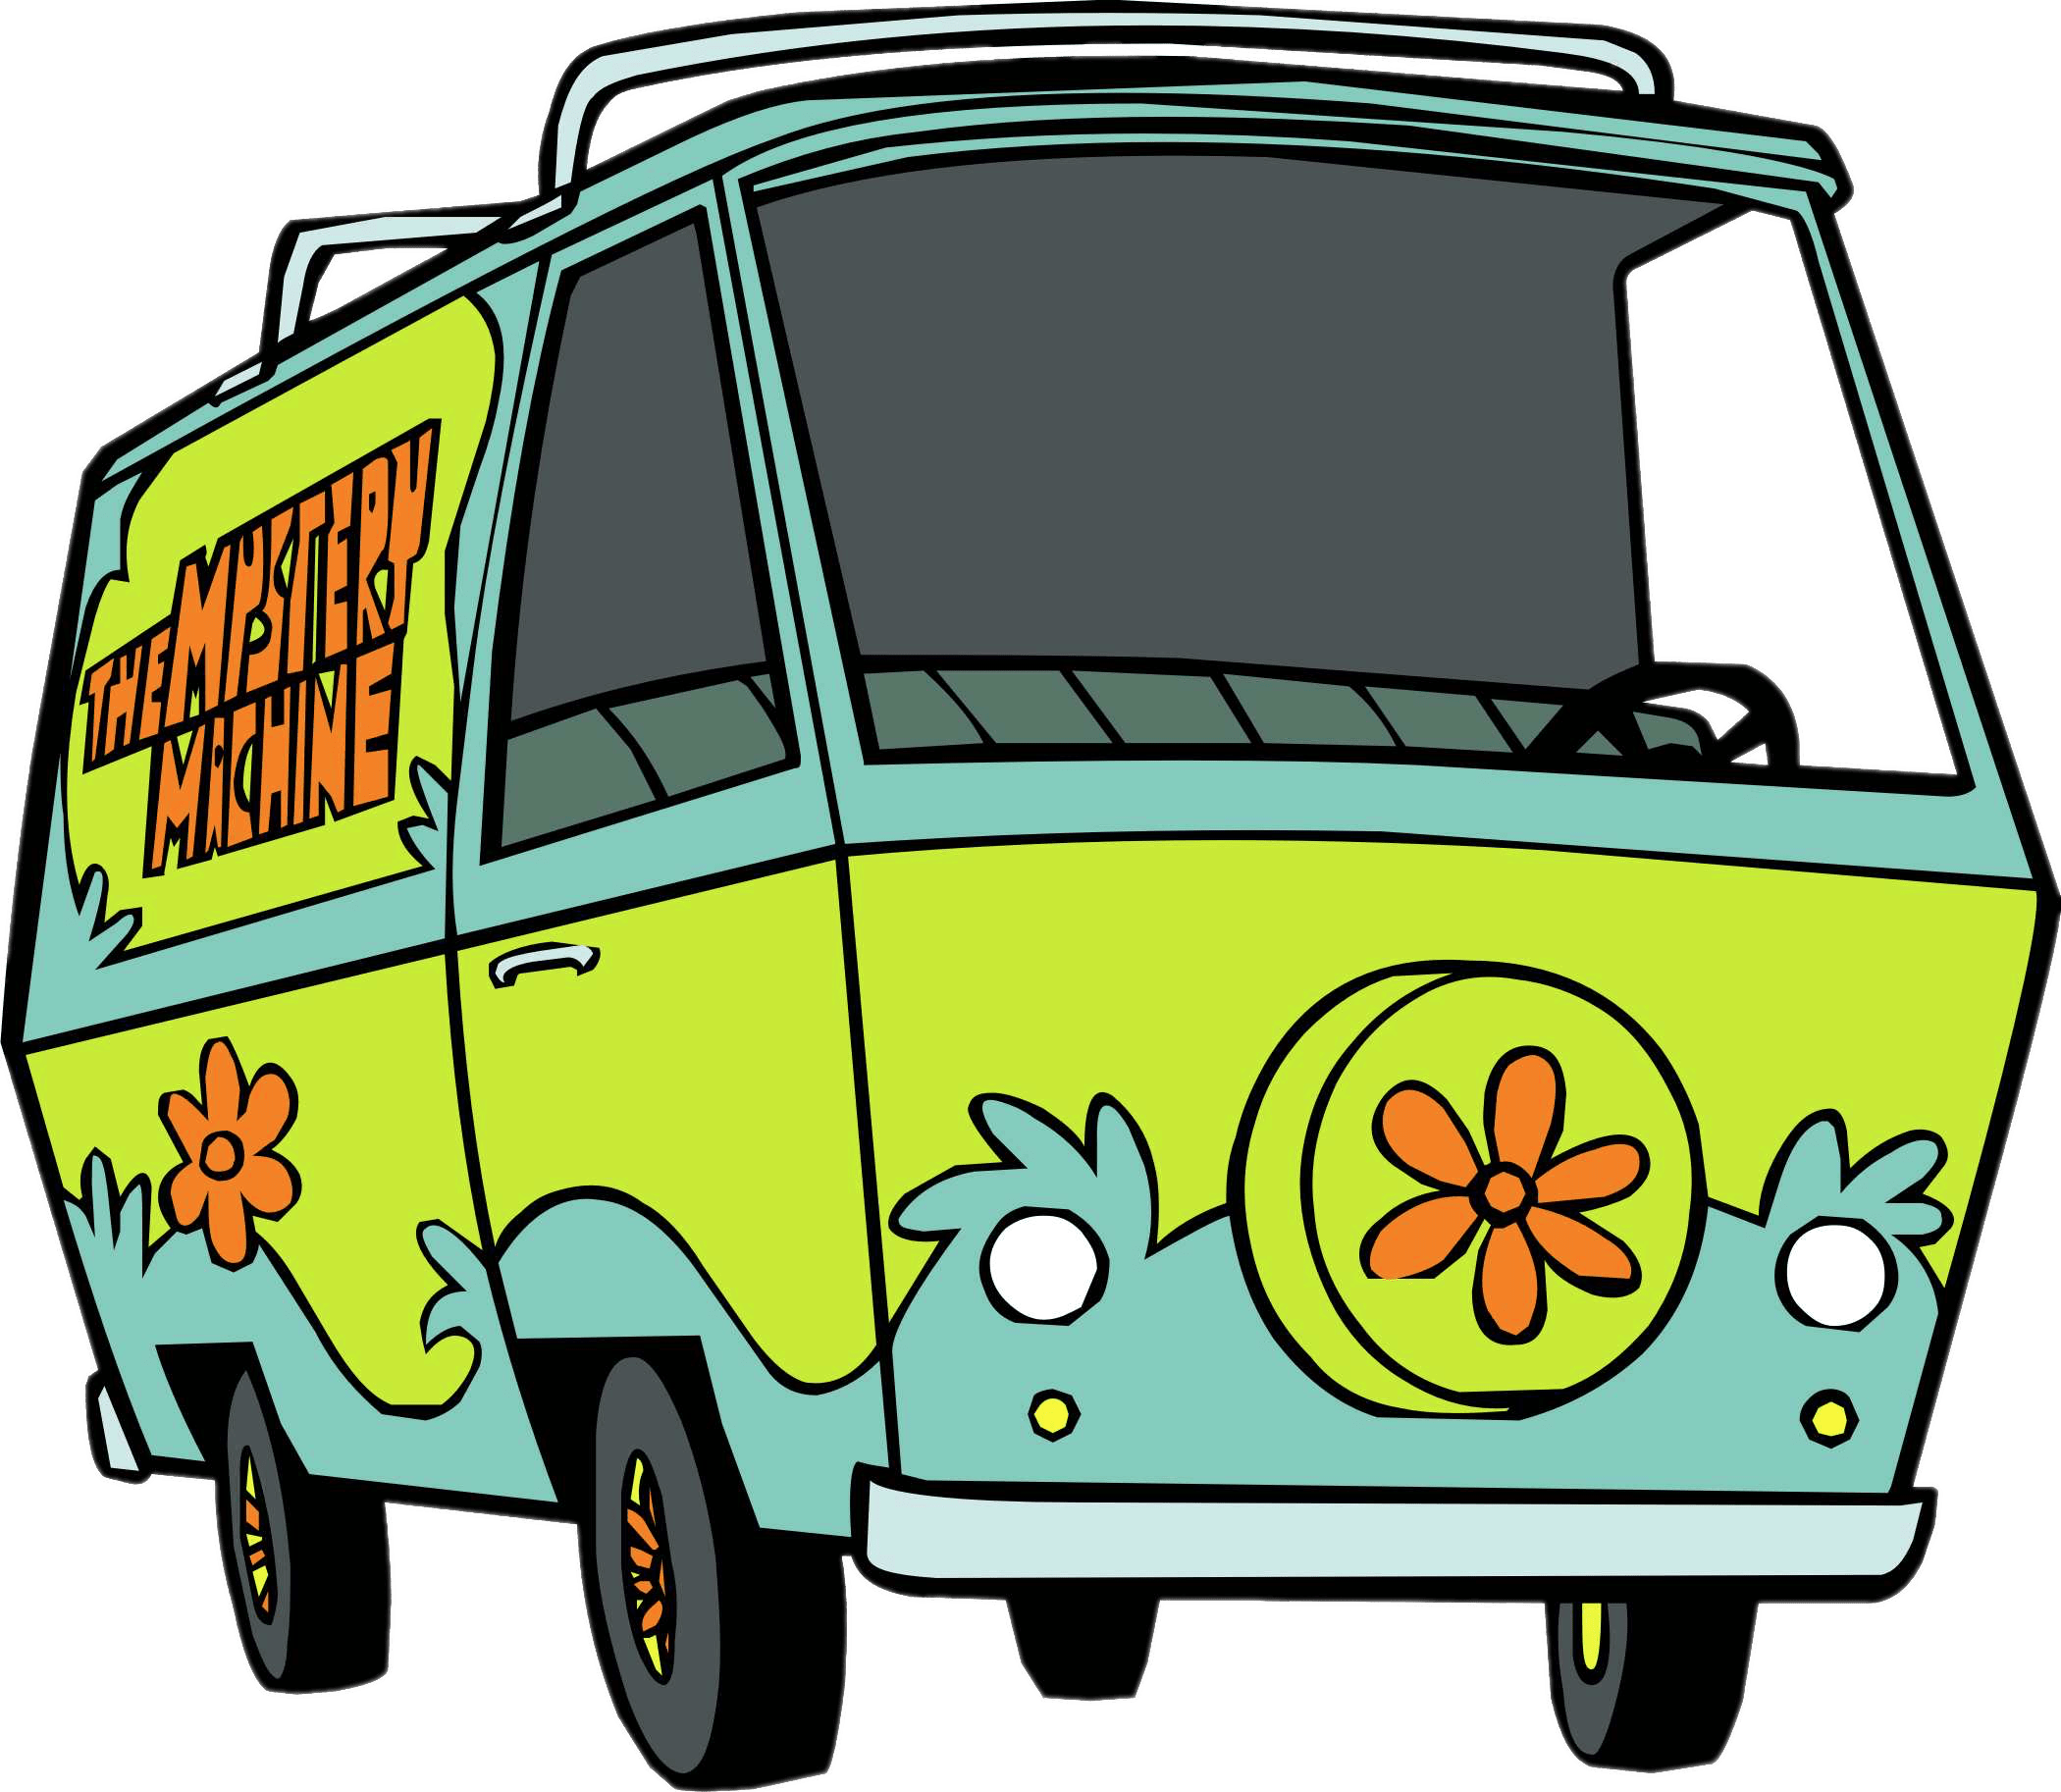 Scooby doo clipart mystery machine. The transparent png stickpng